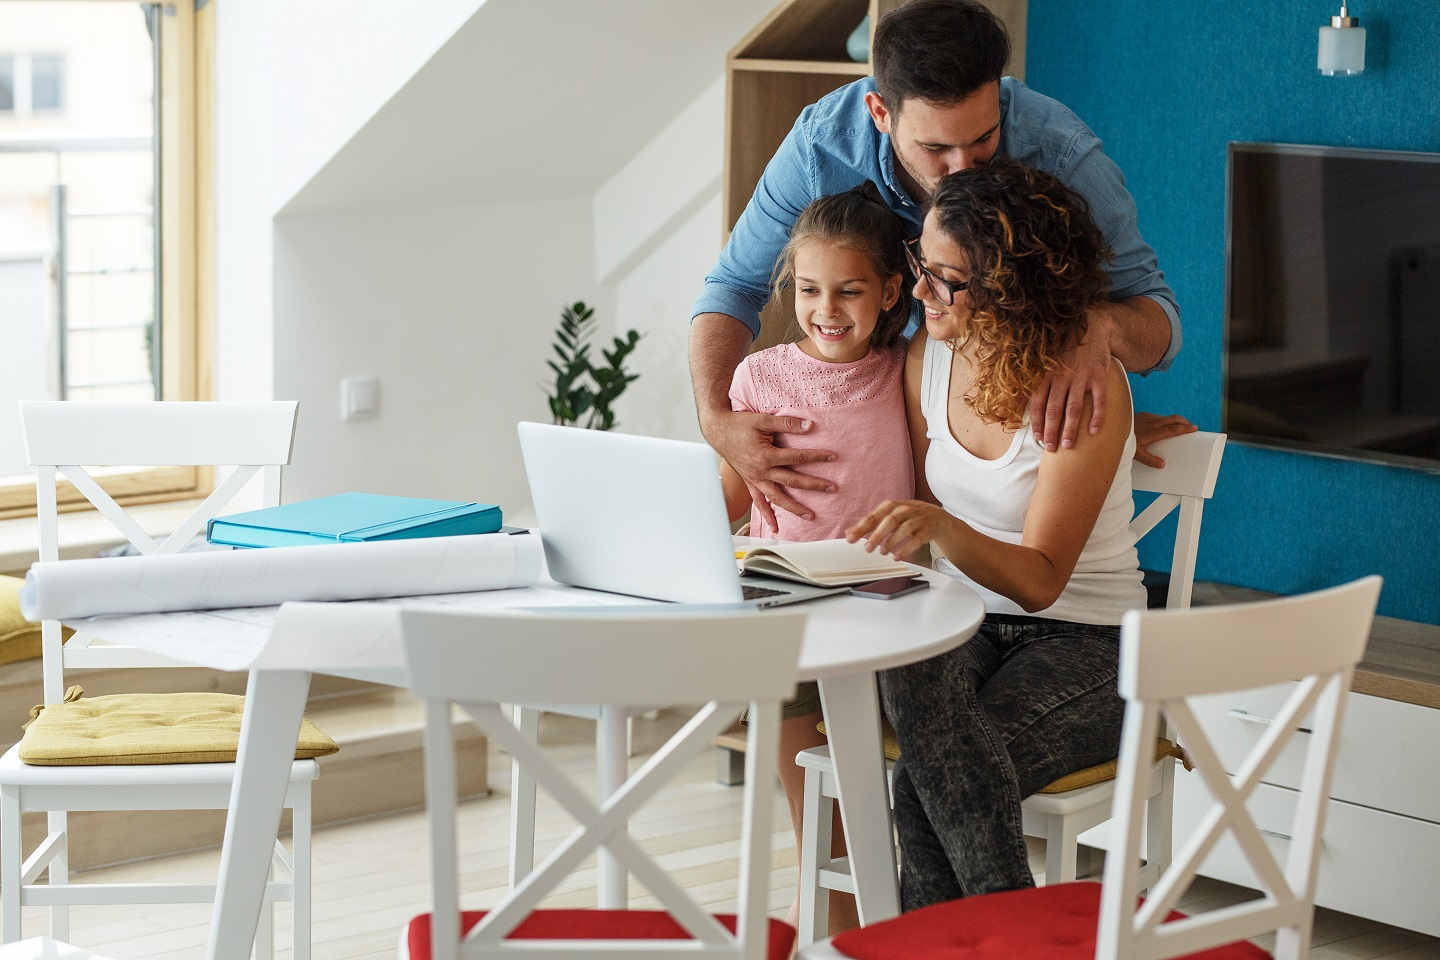 father kissies mother on forehead while child smiling at laptop